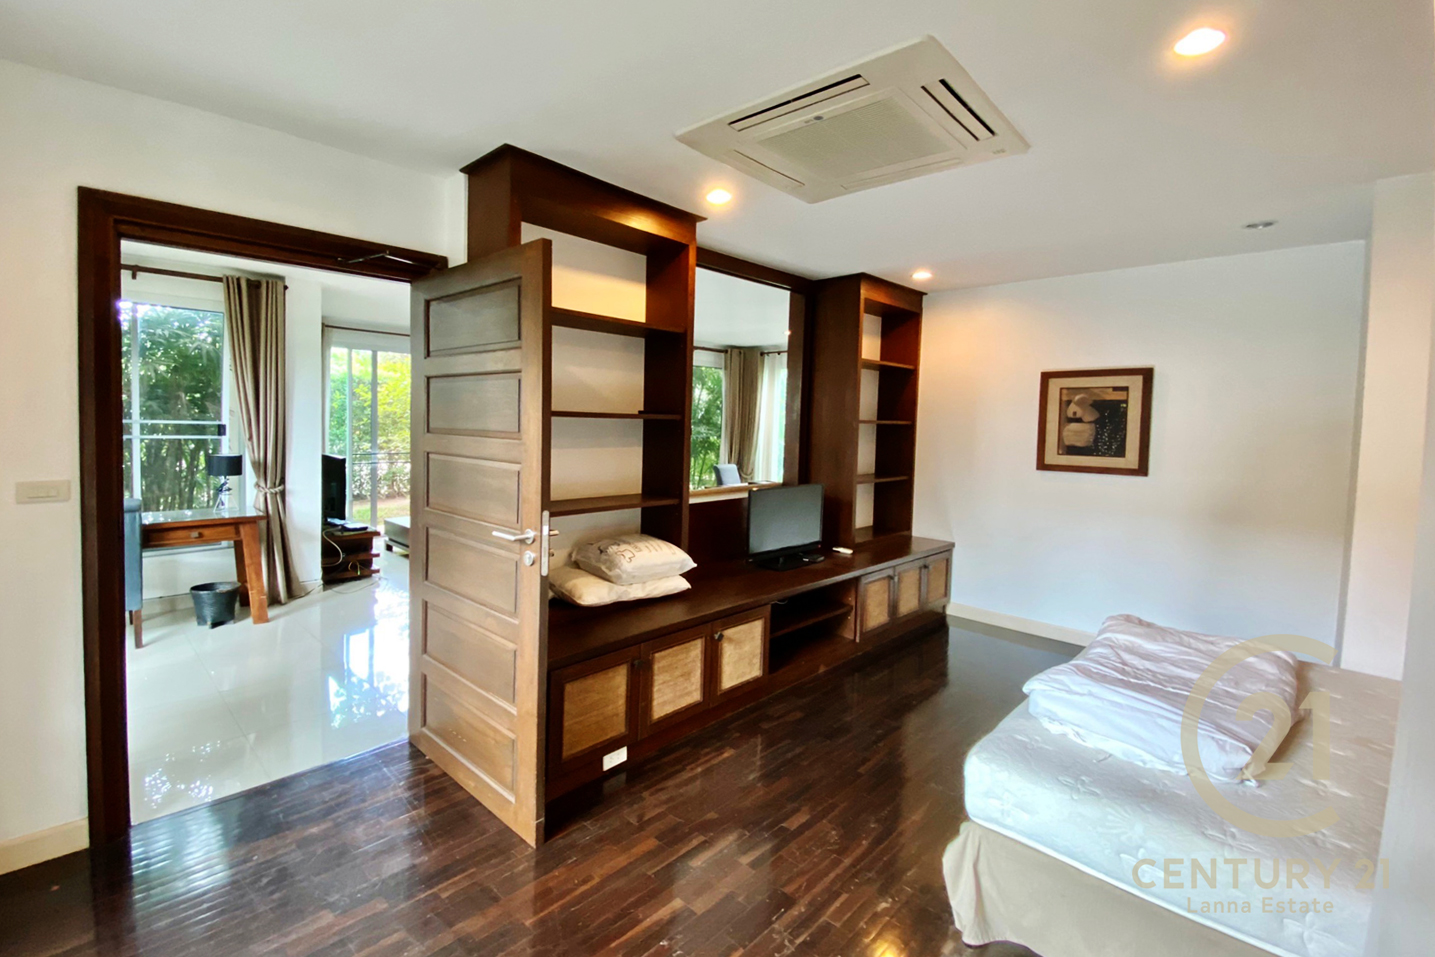 1 Bedroom Condo for Rent or Sale at TNaTaRa Exclusive Residences, Su Thep, Chiang Mai